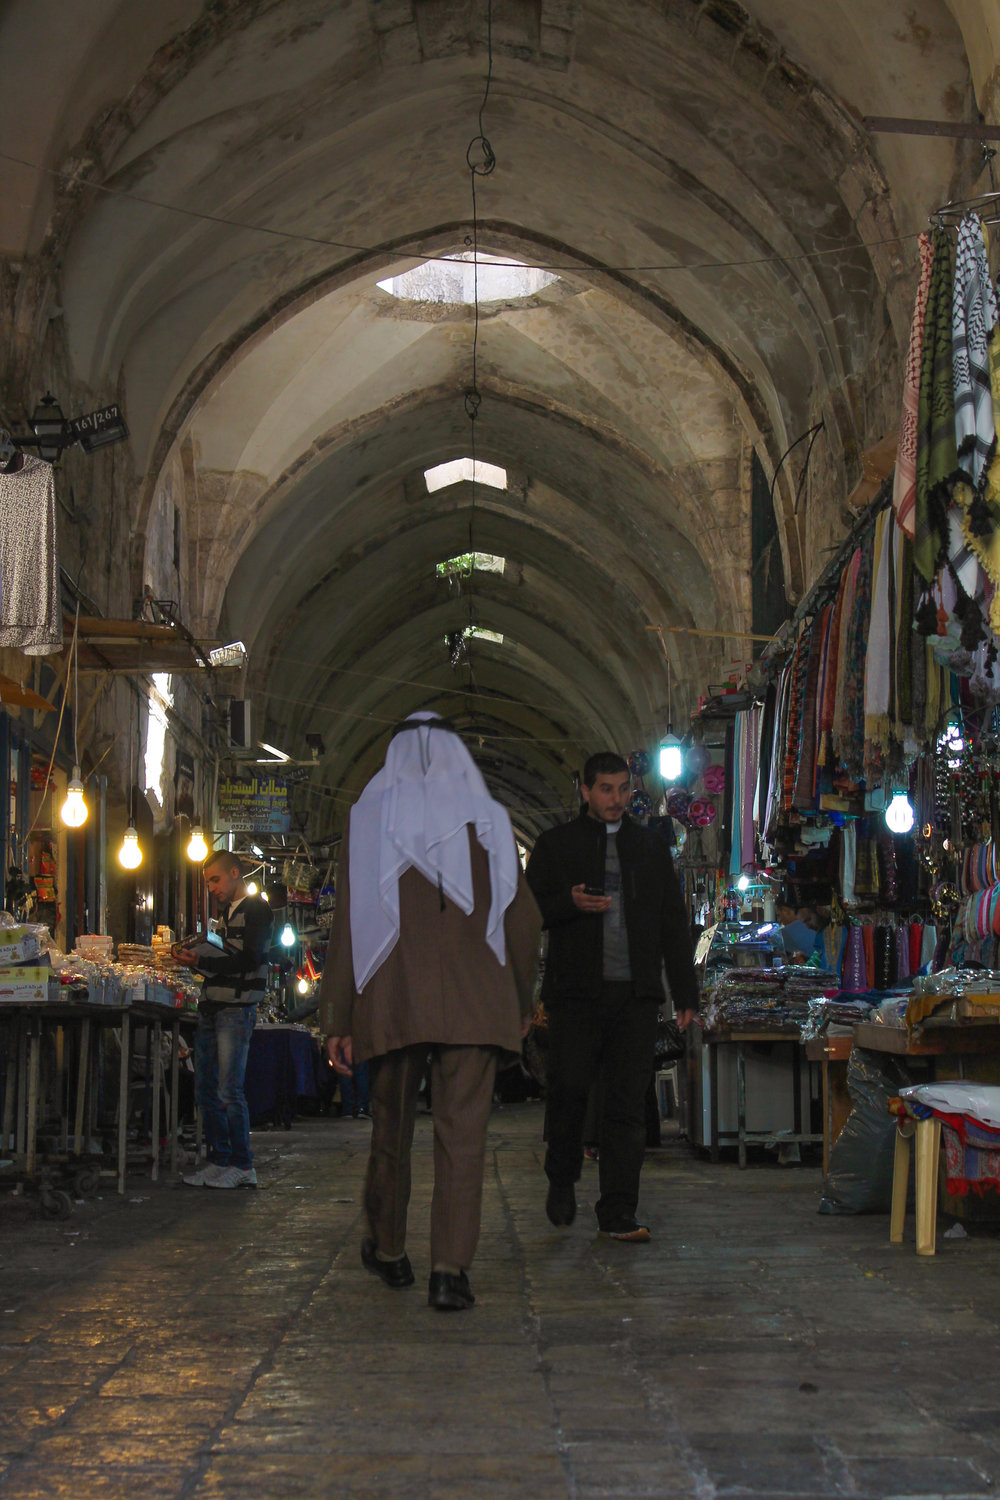 Meanwhile, 100 meters down the road in the Muslim quarter...